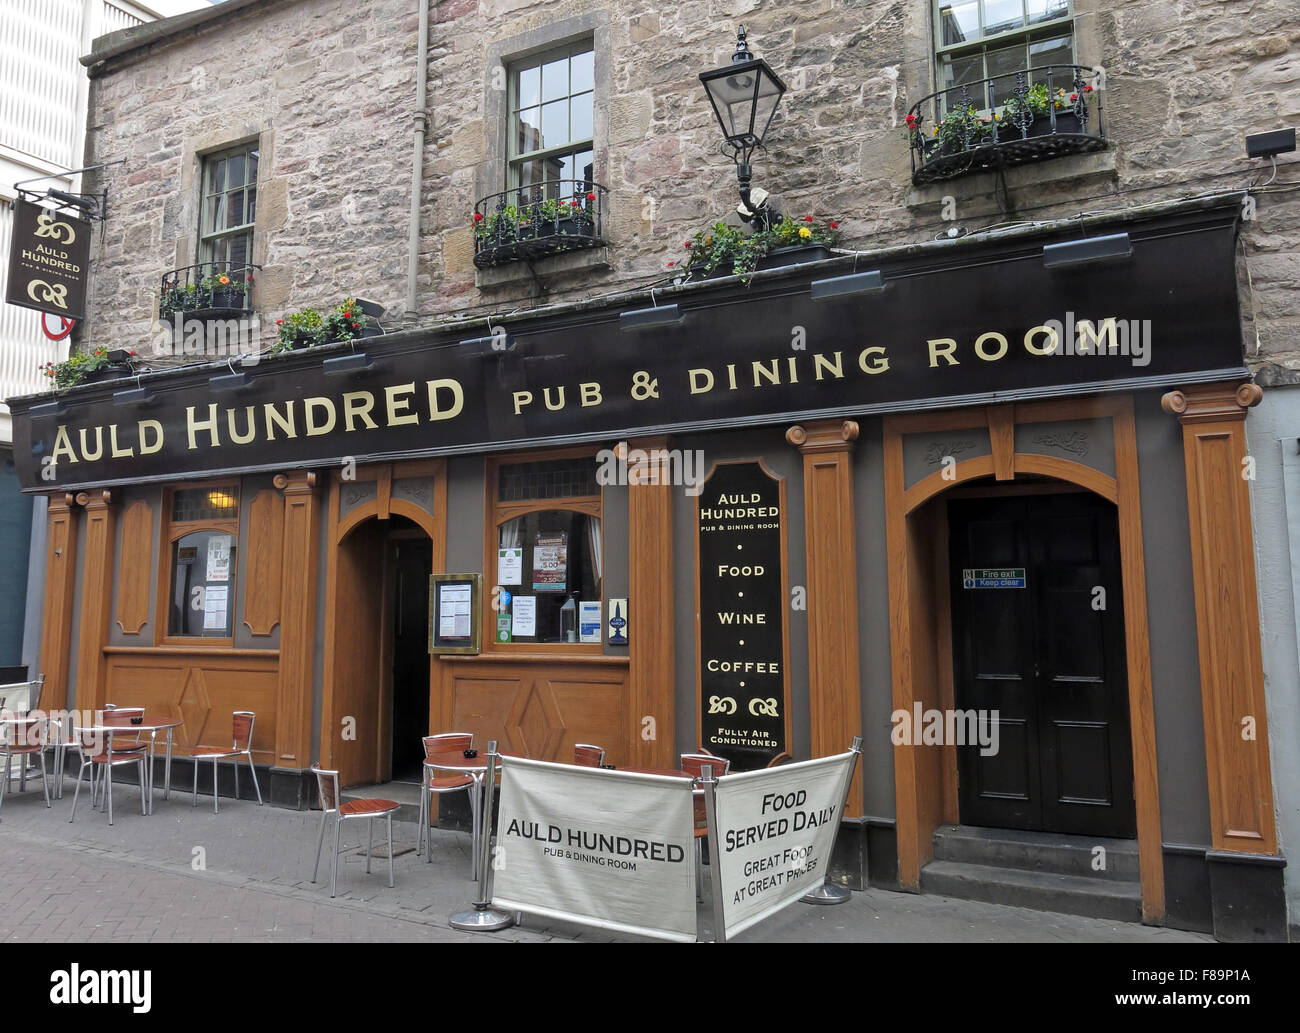 Pubs,stag,night,hen,nights,location,for,area,EDN,narrow,new,pedestrian,pedestrianised,scottish,shopping,st,street,town,dining,room,stone,rose street,Rose st,Auld Hundred,Pub & Dining Room,Pub and Dining Room,GoTonySmith,drinking,culture,alcoholism,alcoholics,AA,outside,street,history,historic,Buy Pictures of,Buy Images Of,Edinburgh Pubs,Edinburgh Pub